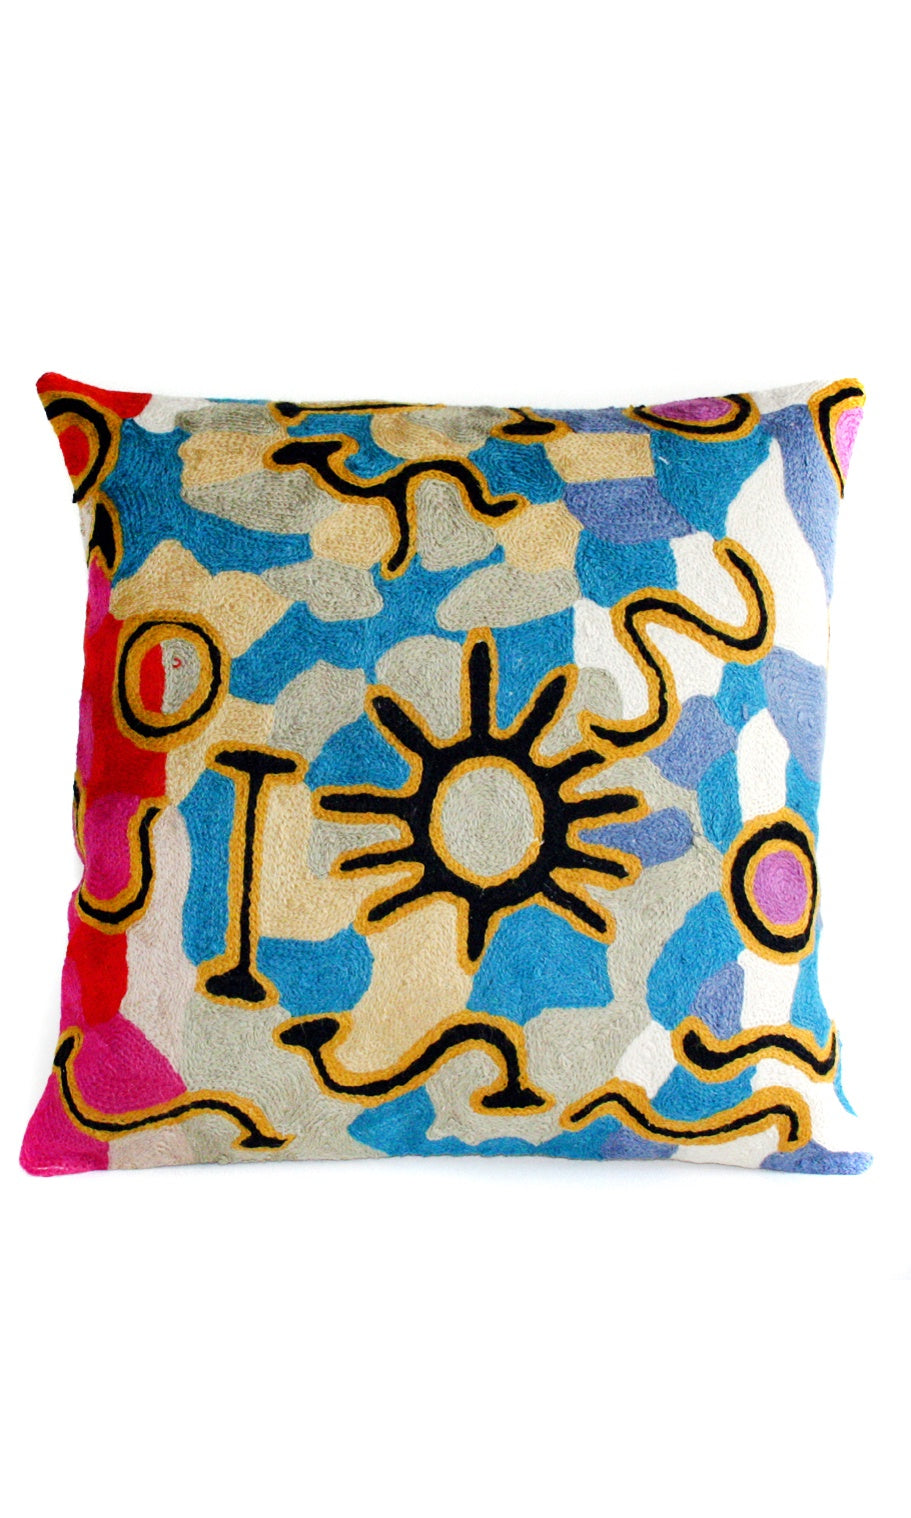 Aboriginal Art Cushion Cover by Willie Wilson (2)